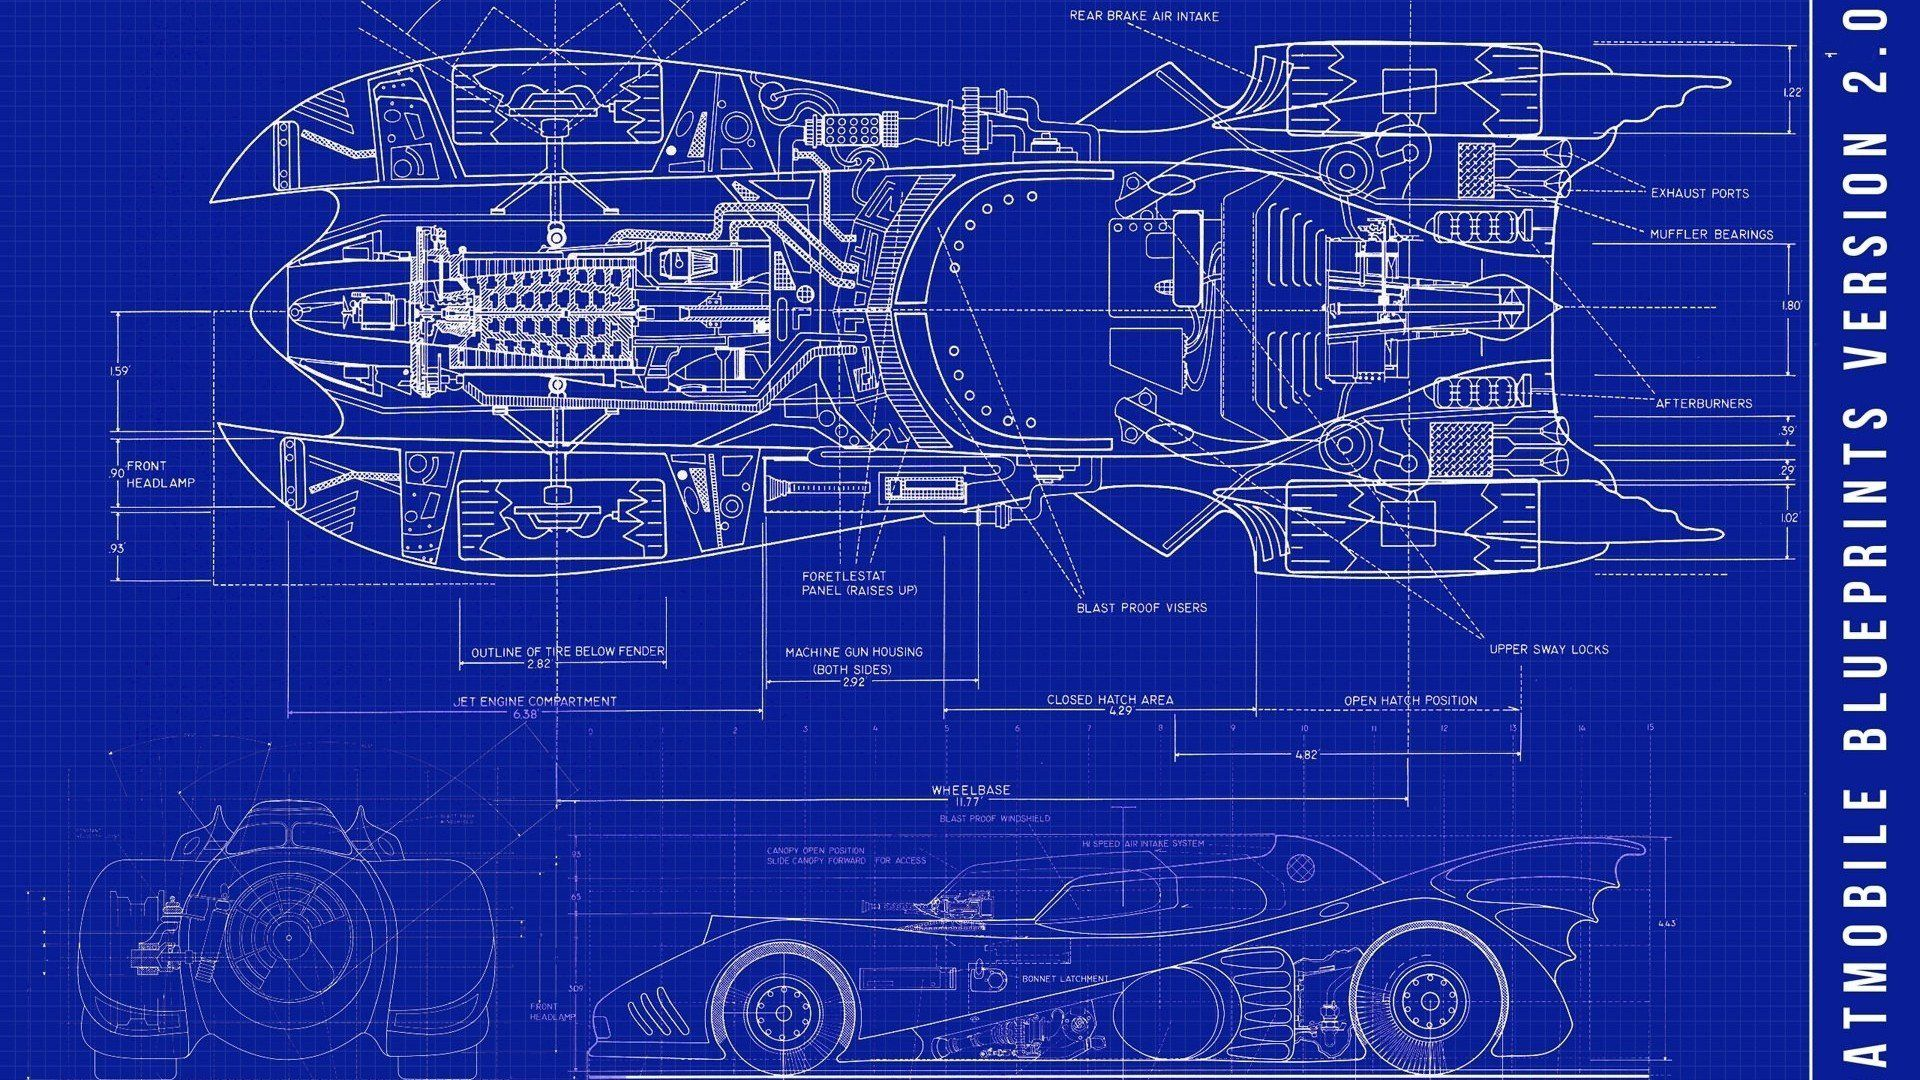 Blueprint background free download wallpapercraft wallpapers blueprint background free download wallpapercraft malvernweather Gallery